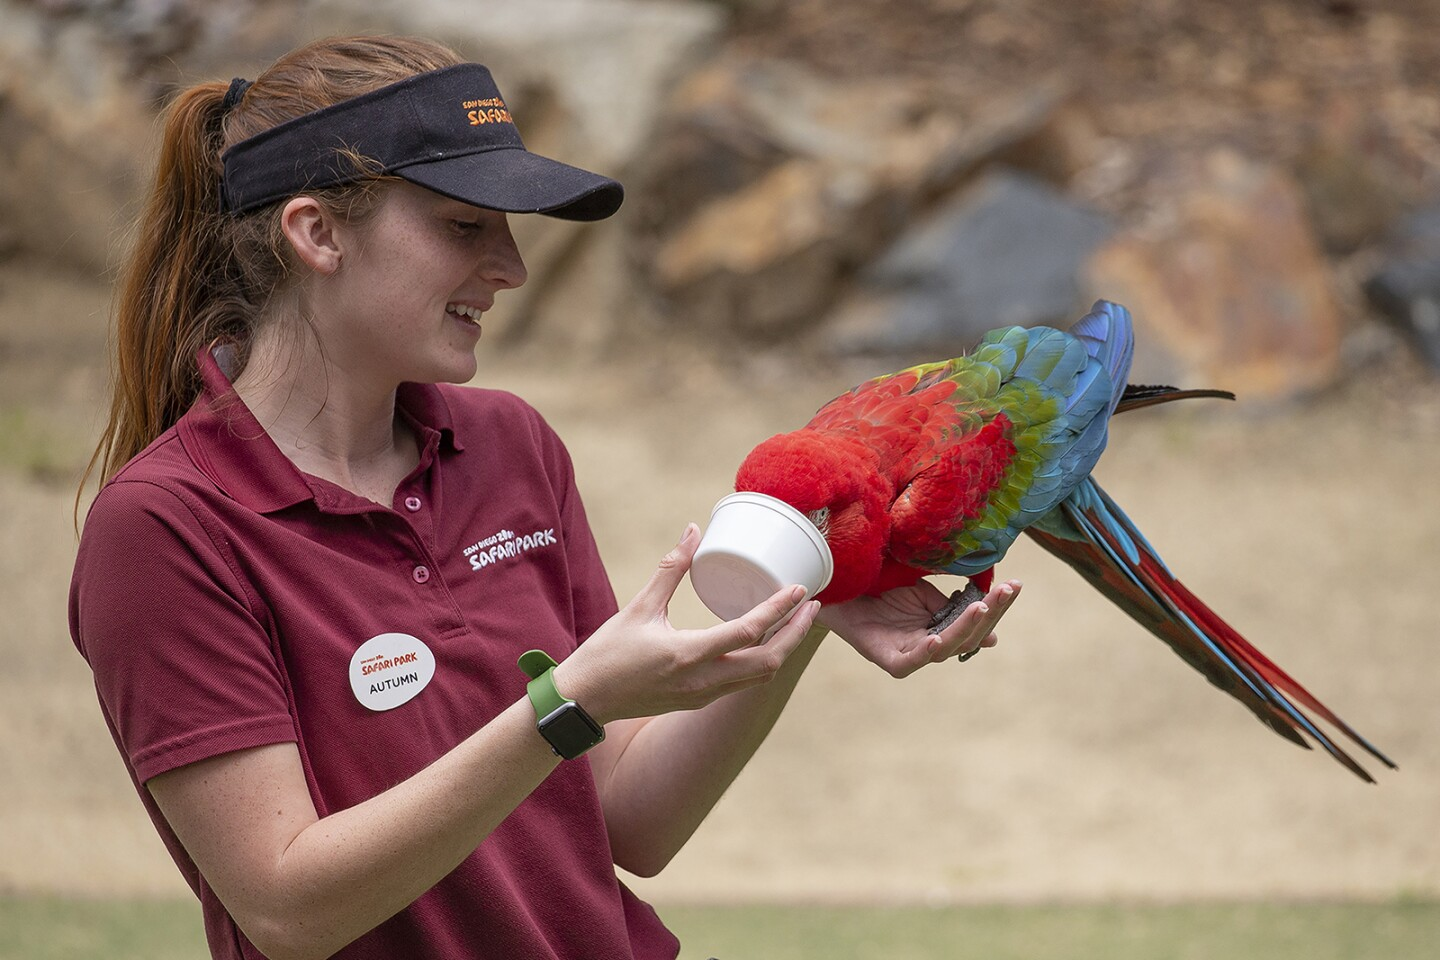 A Macaw eats food while perched on handler. | Taken on March 25, 2020 by Tammy Spratt/San Diego Zoo